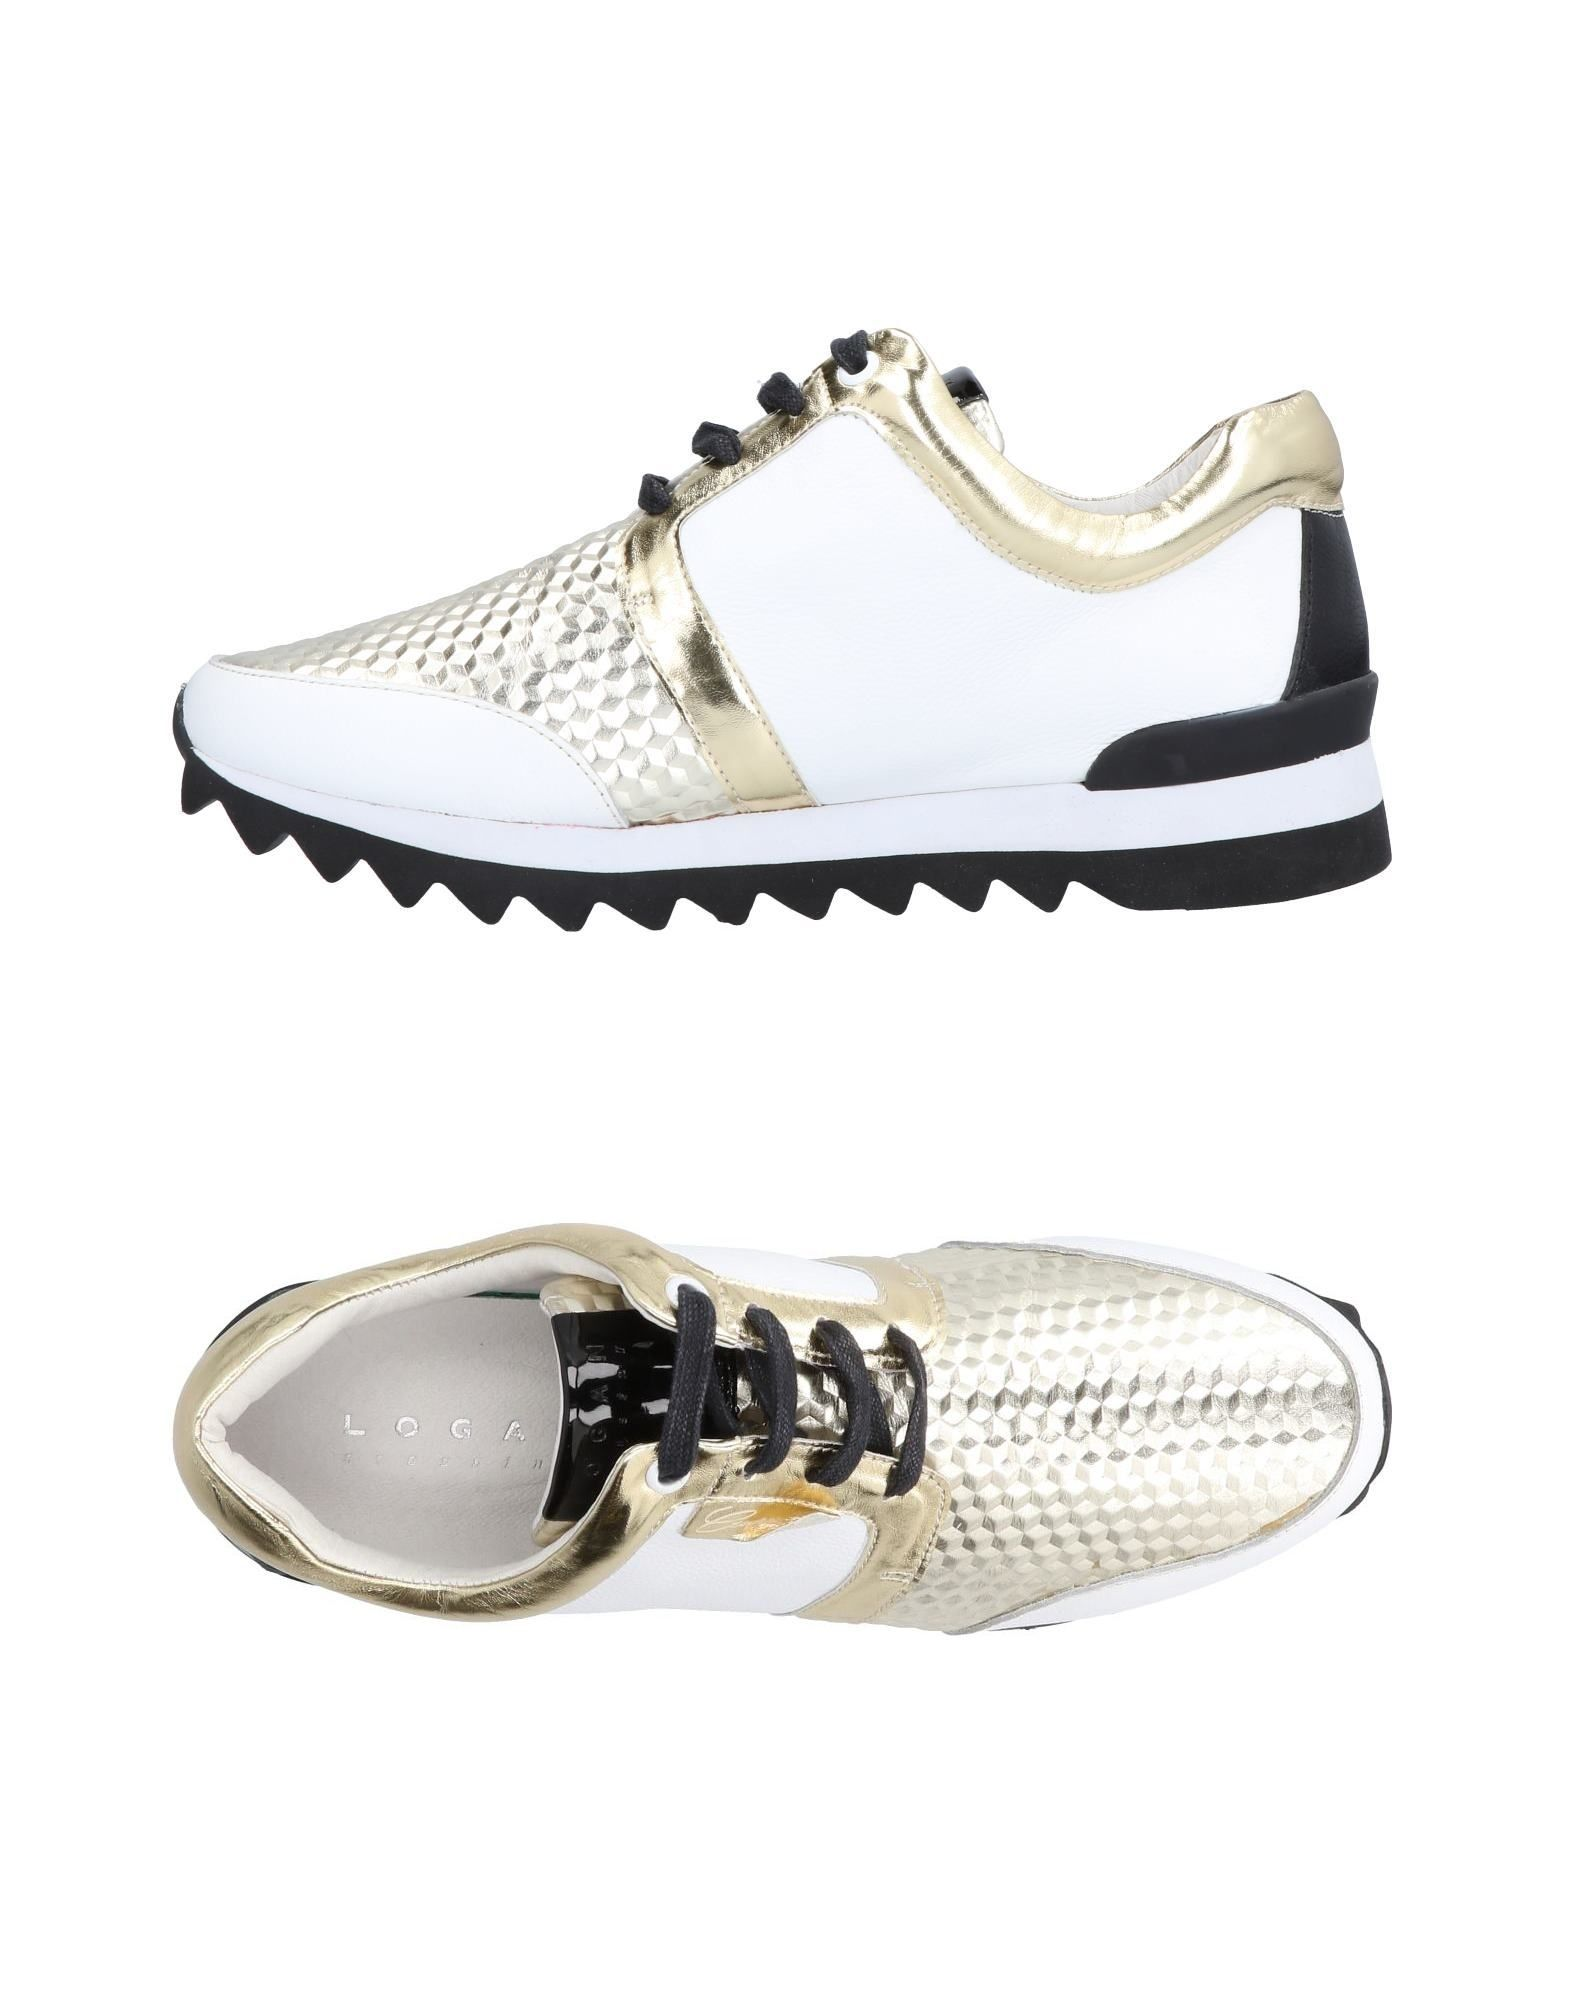 Sneakers 11484276FW Logan Crossing Donna - 11484276FW Sneakers 5e0486